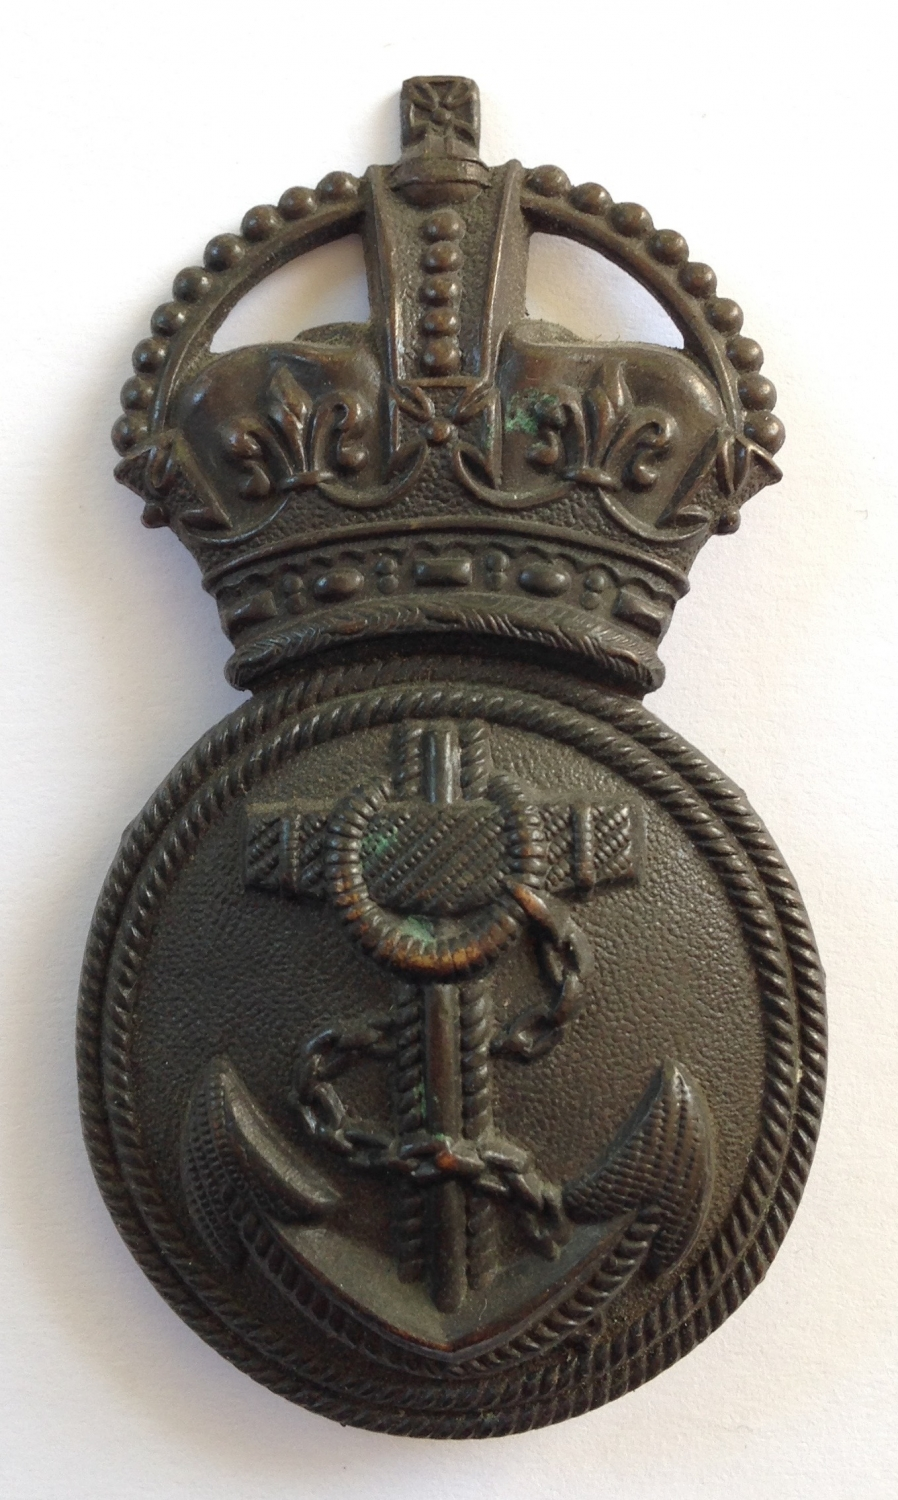 RND Chief Petty Officer cap badge